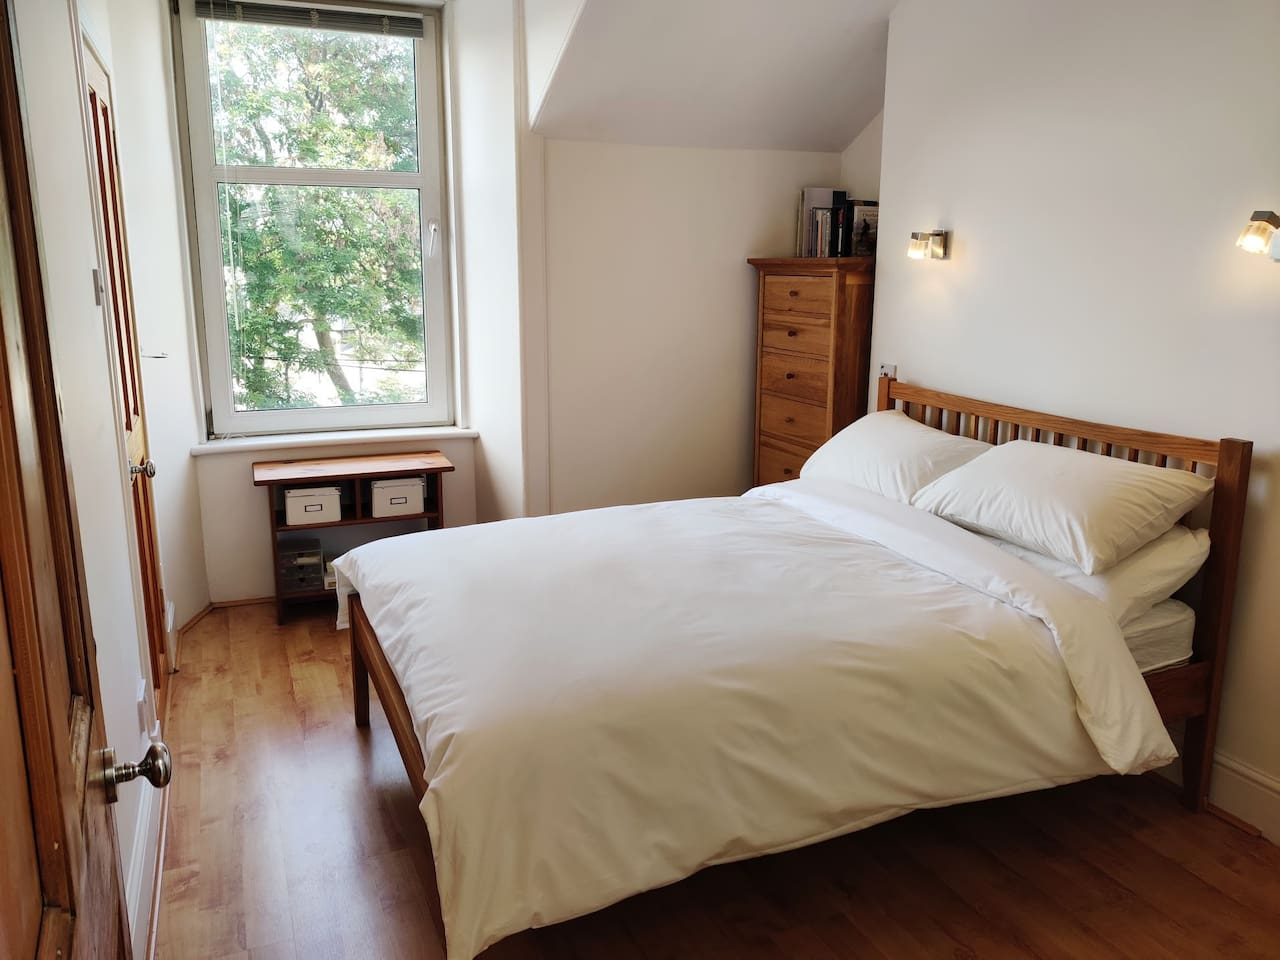 Master Bedroom w/ En-Suite: bright, airy double with peaceful leafy views